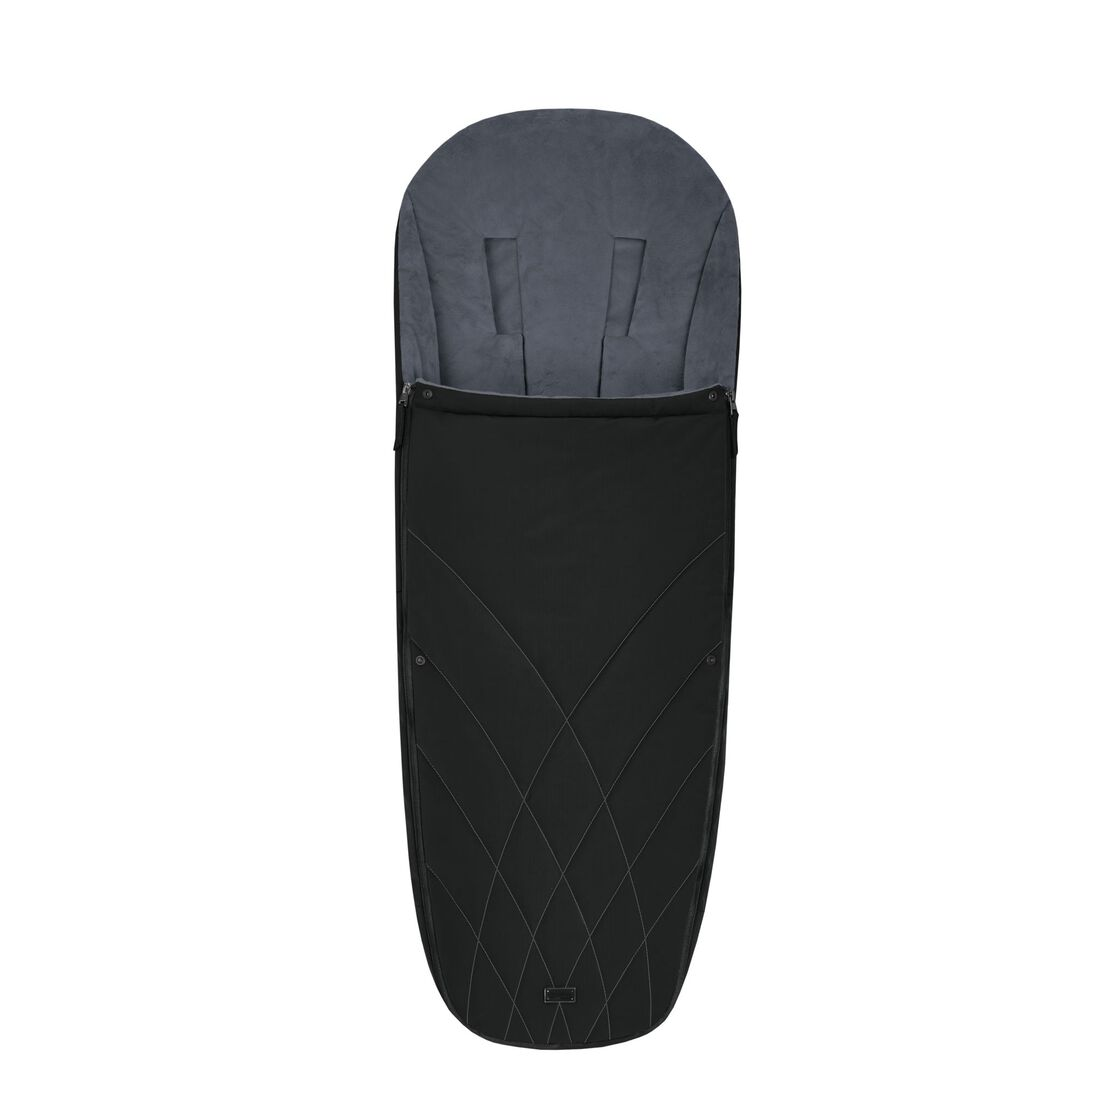 CYBEX Platinum Footmuff - Deep Black in Deep Black large image number 1